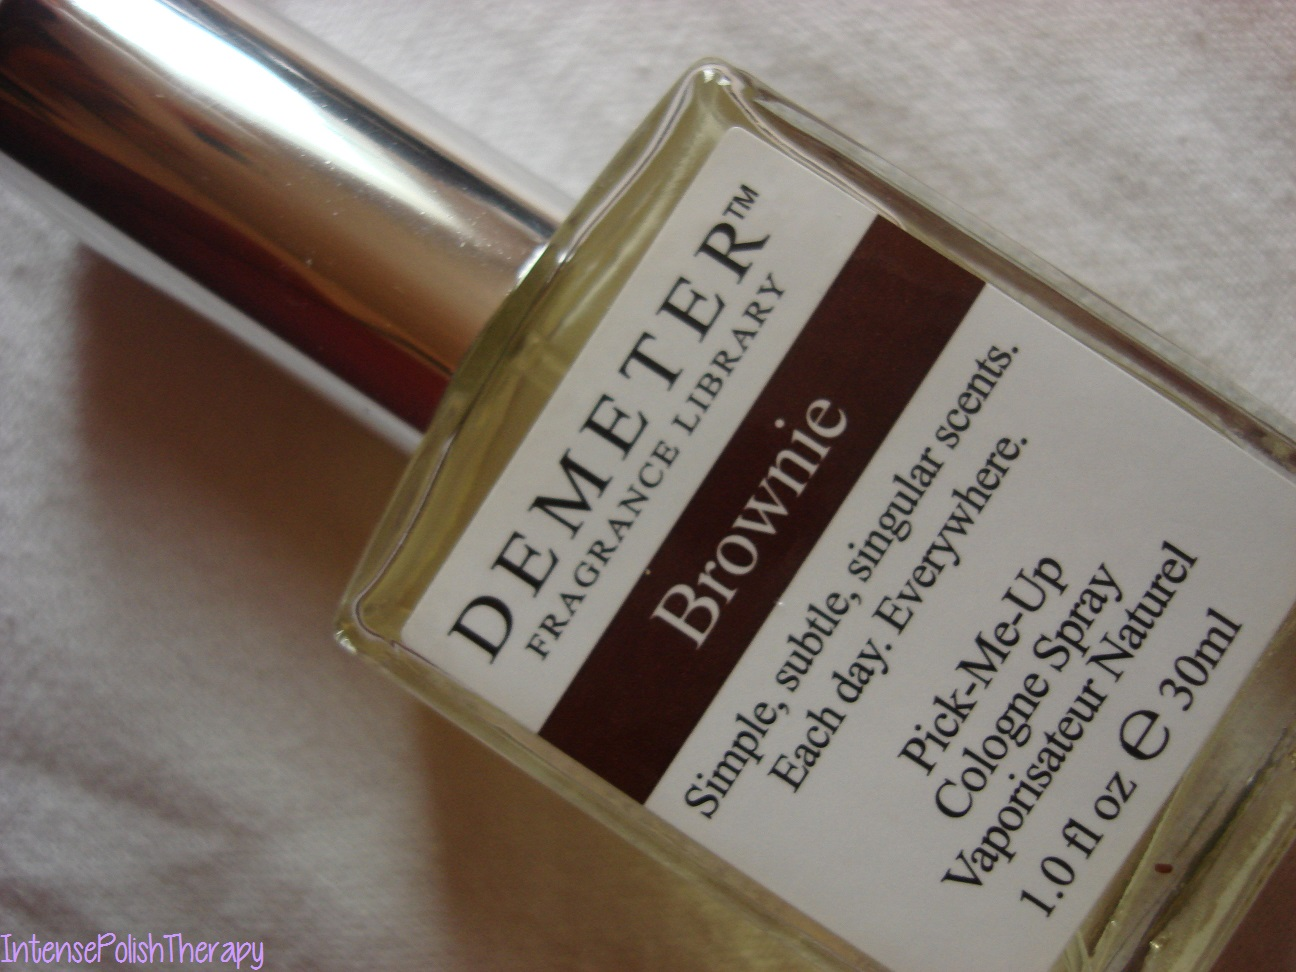 Demeter Fragrance Library - Brownie